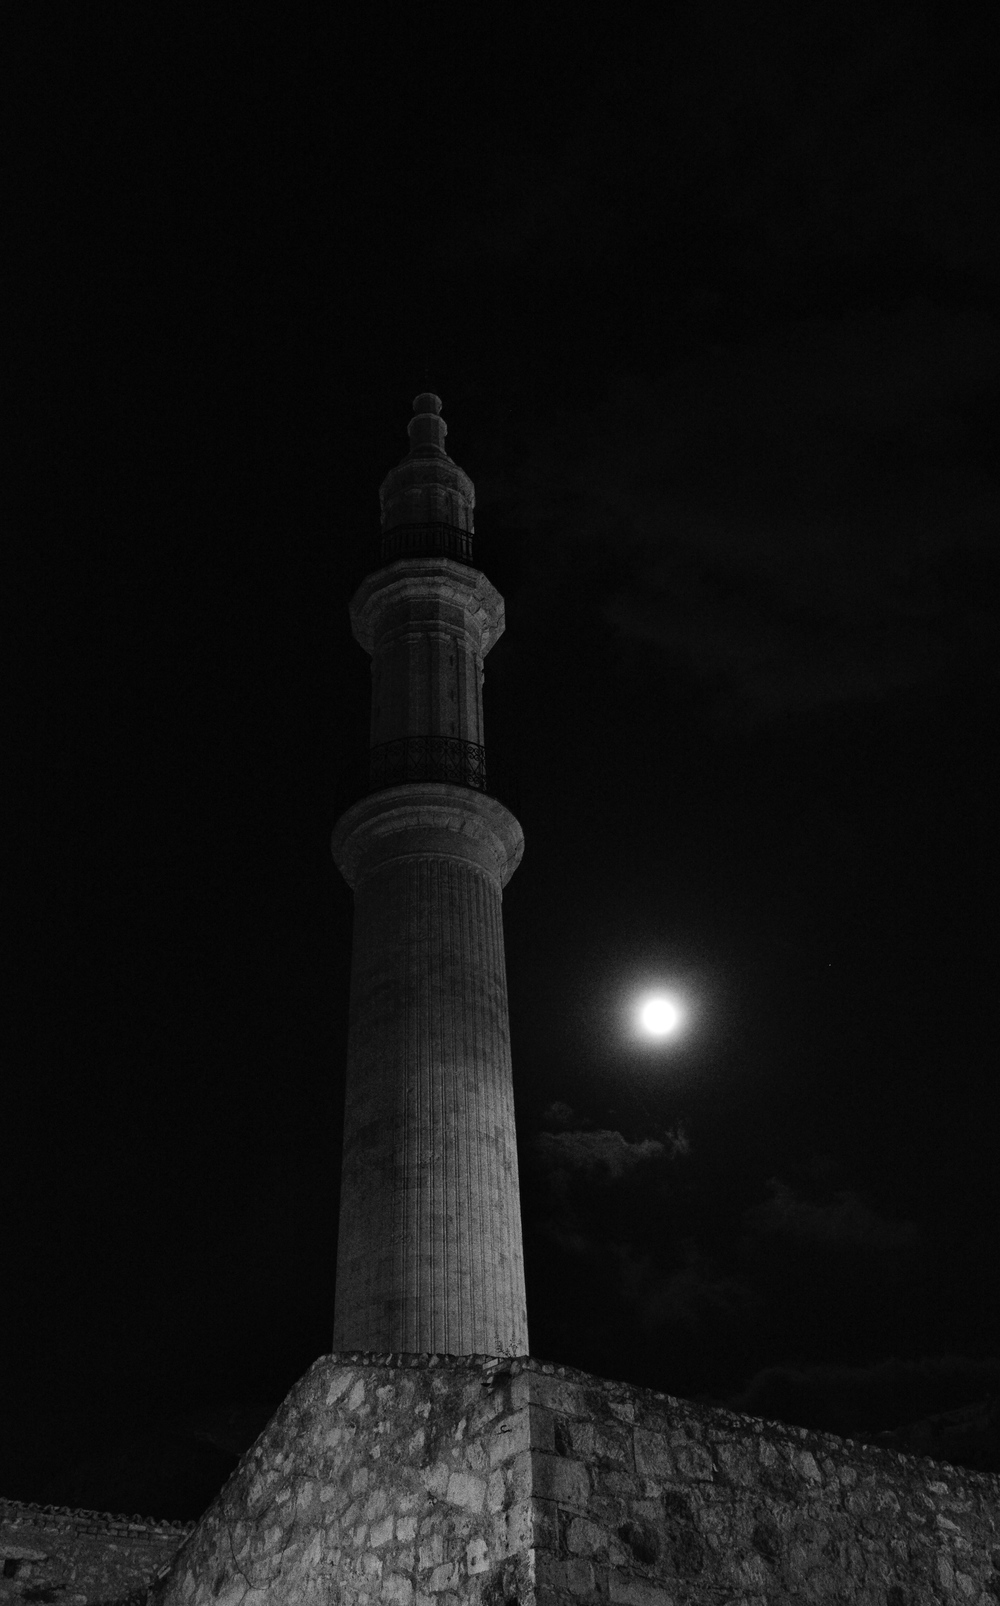 Moonlight over the Neratze Mosque and Minaret